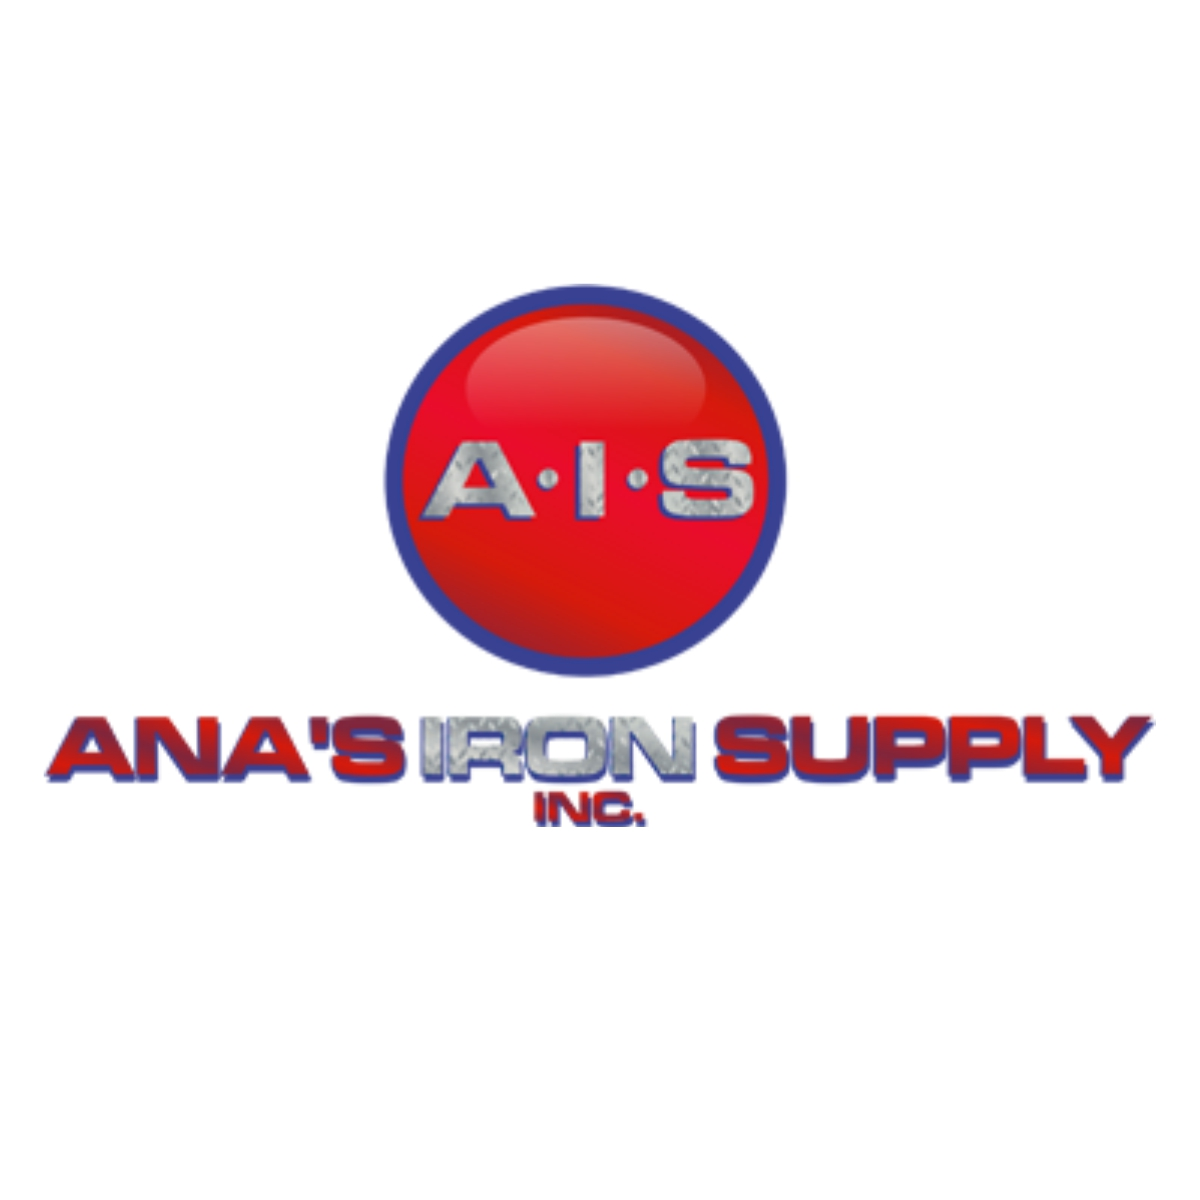 Ana's Iron Supply Inc